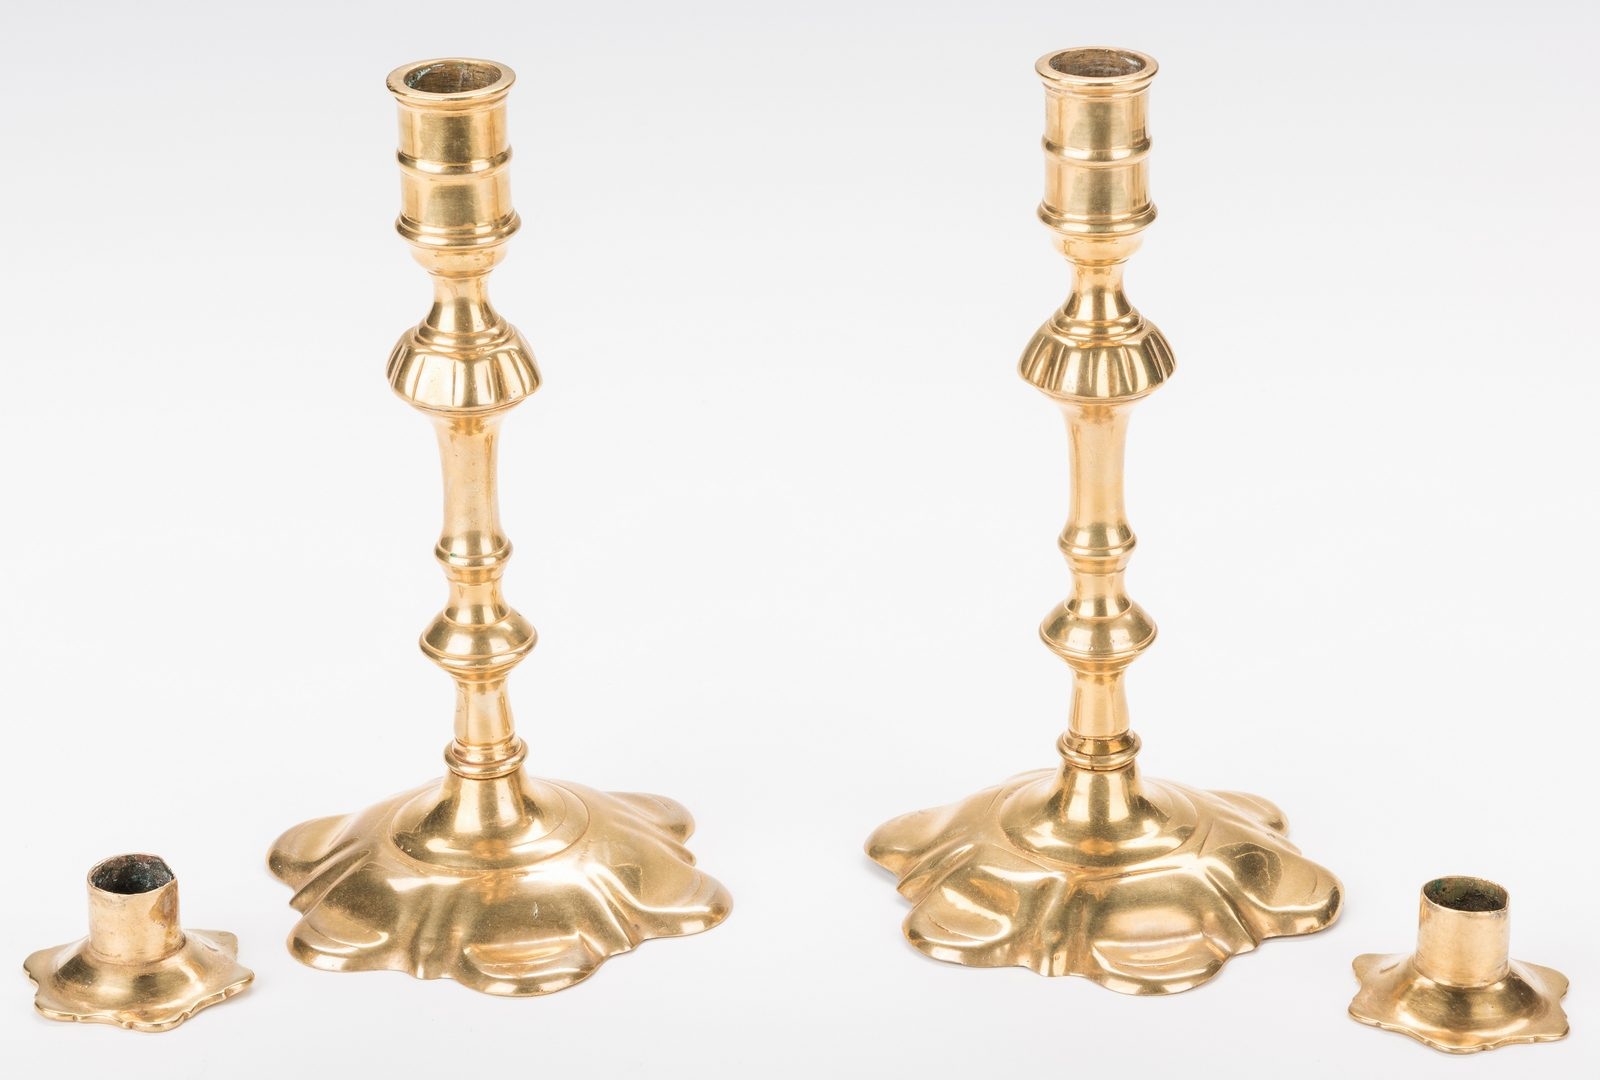 Lot 319: 6 Brass Candlesticks plus Snuffers and Stand